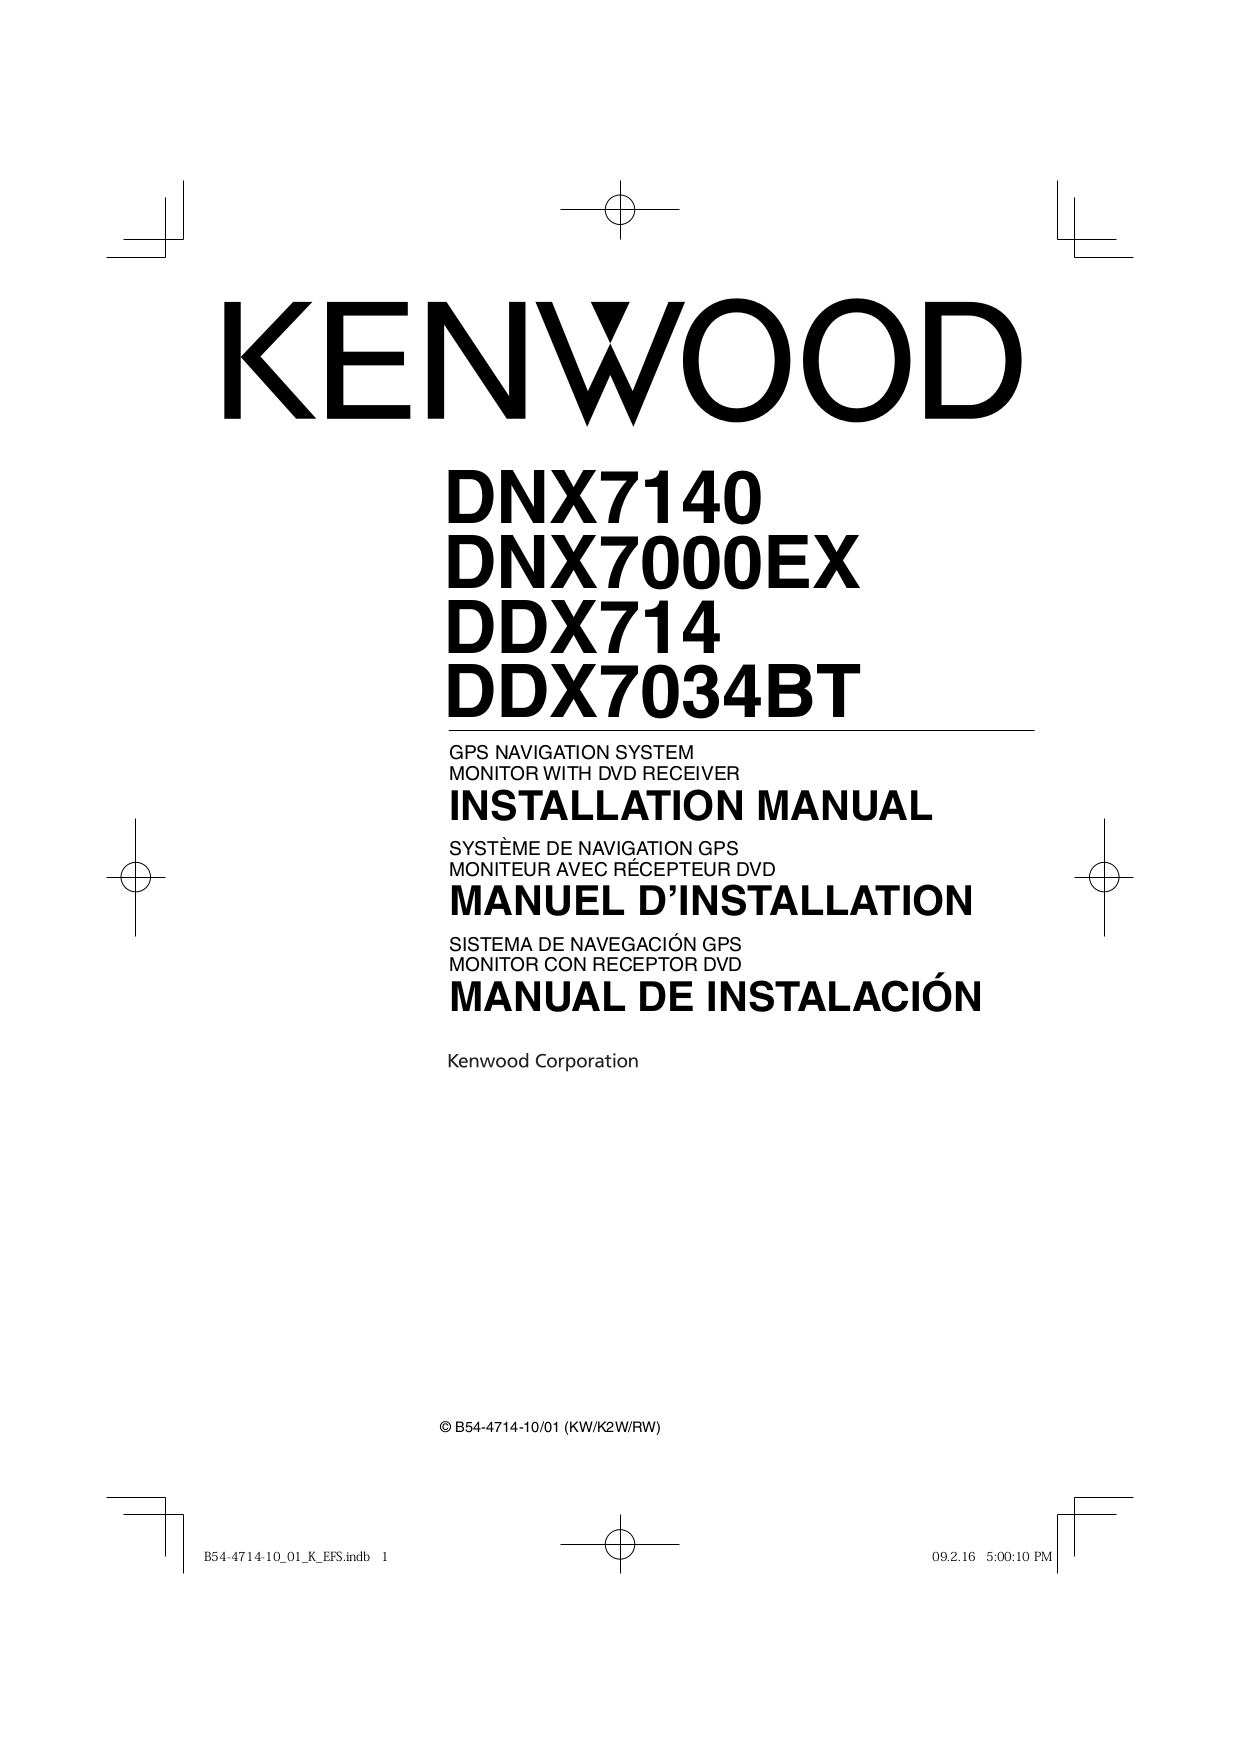 download free pdf for kenwood ddx7034bt car receiver manual